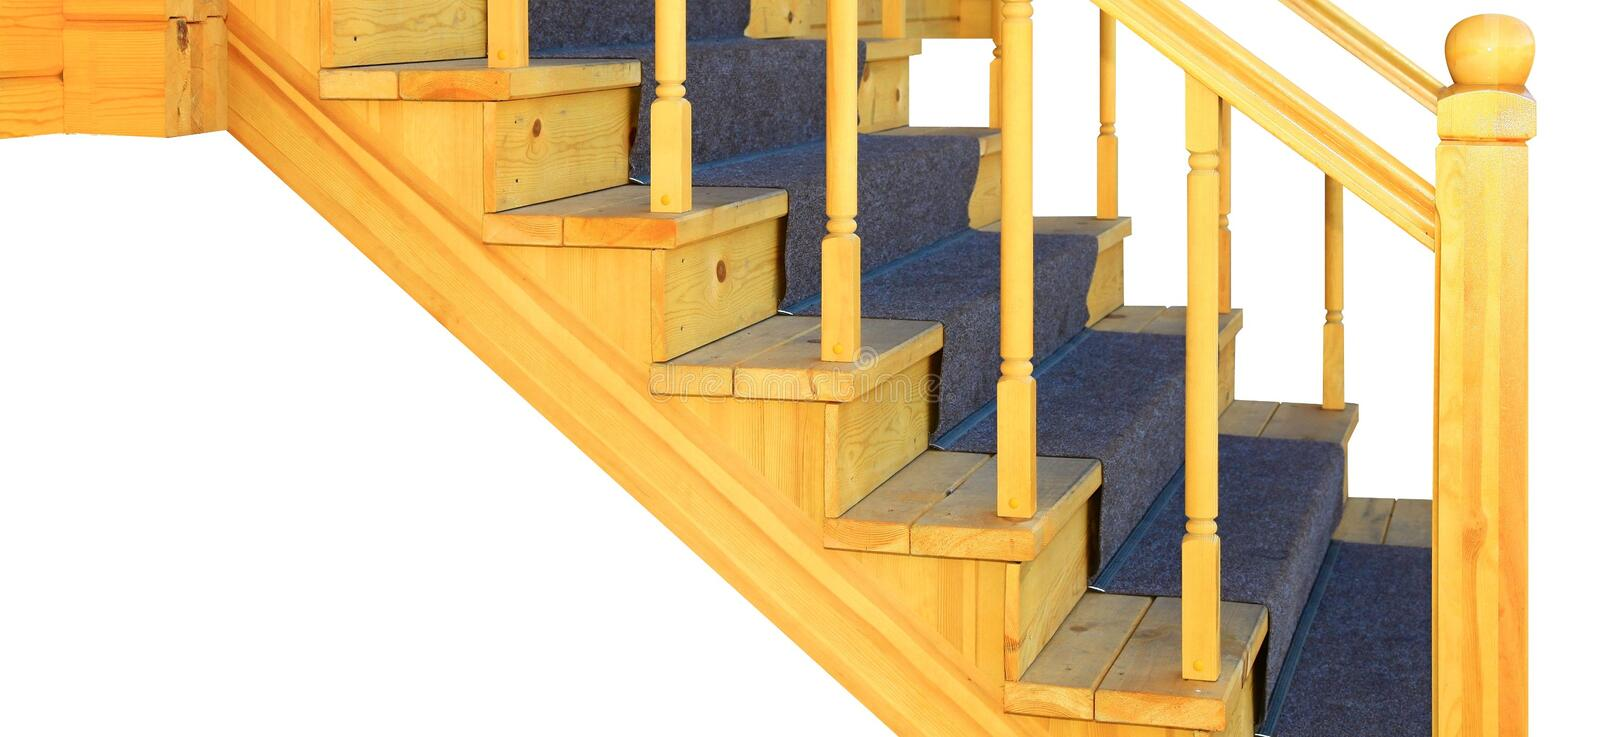 Download Stairs stock photo. Image of house, russia, building - 16099760